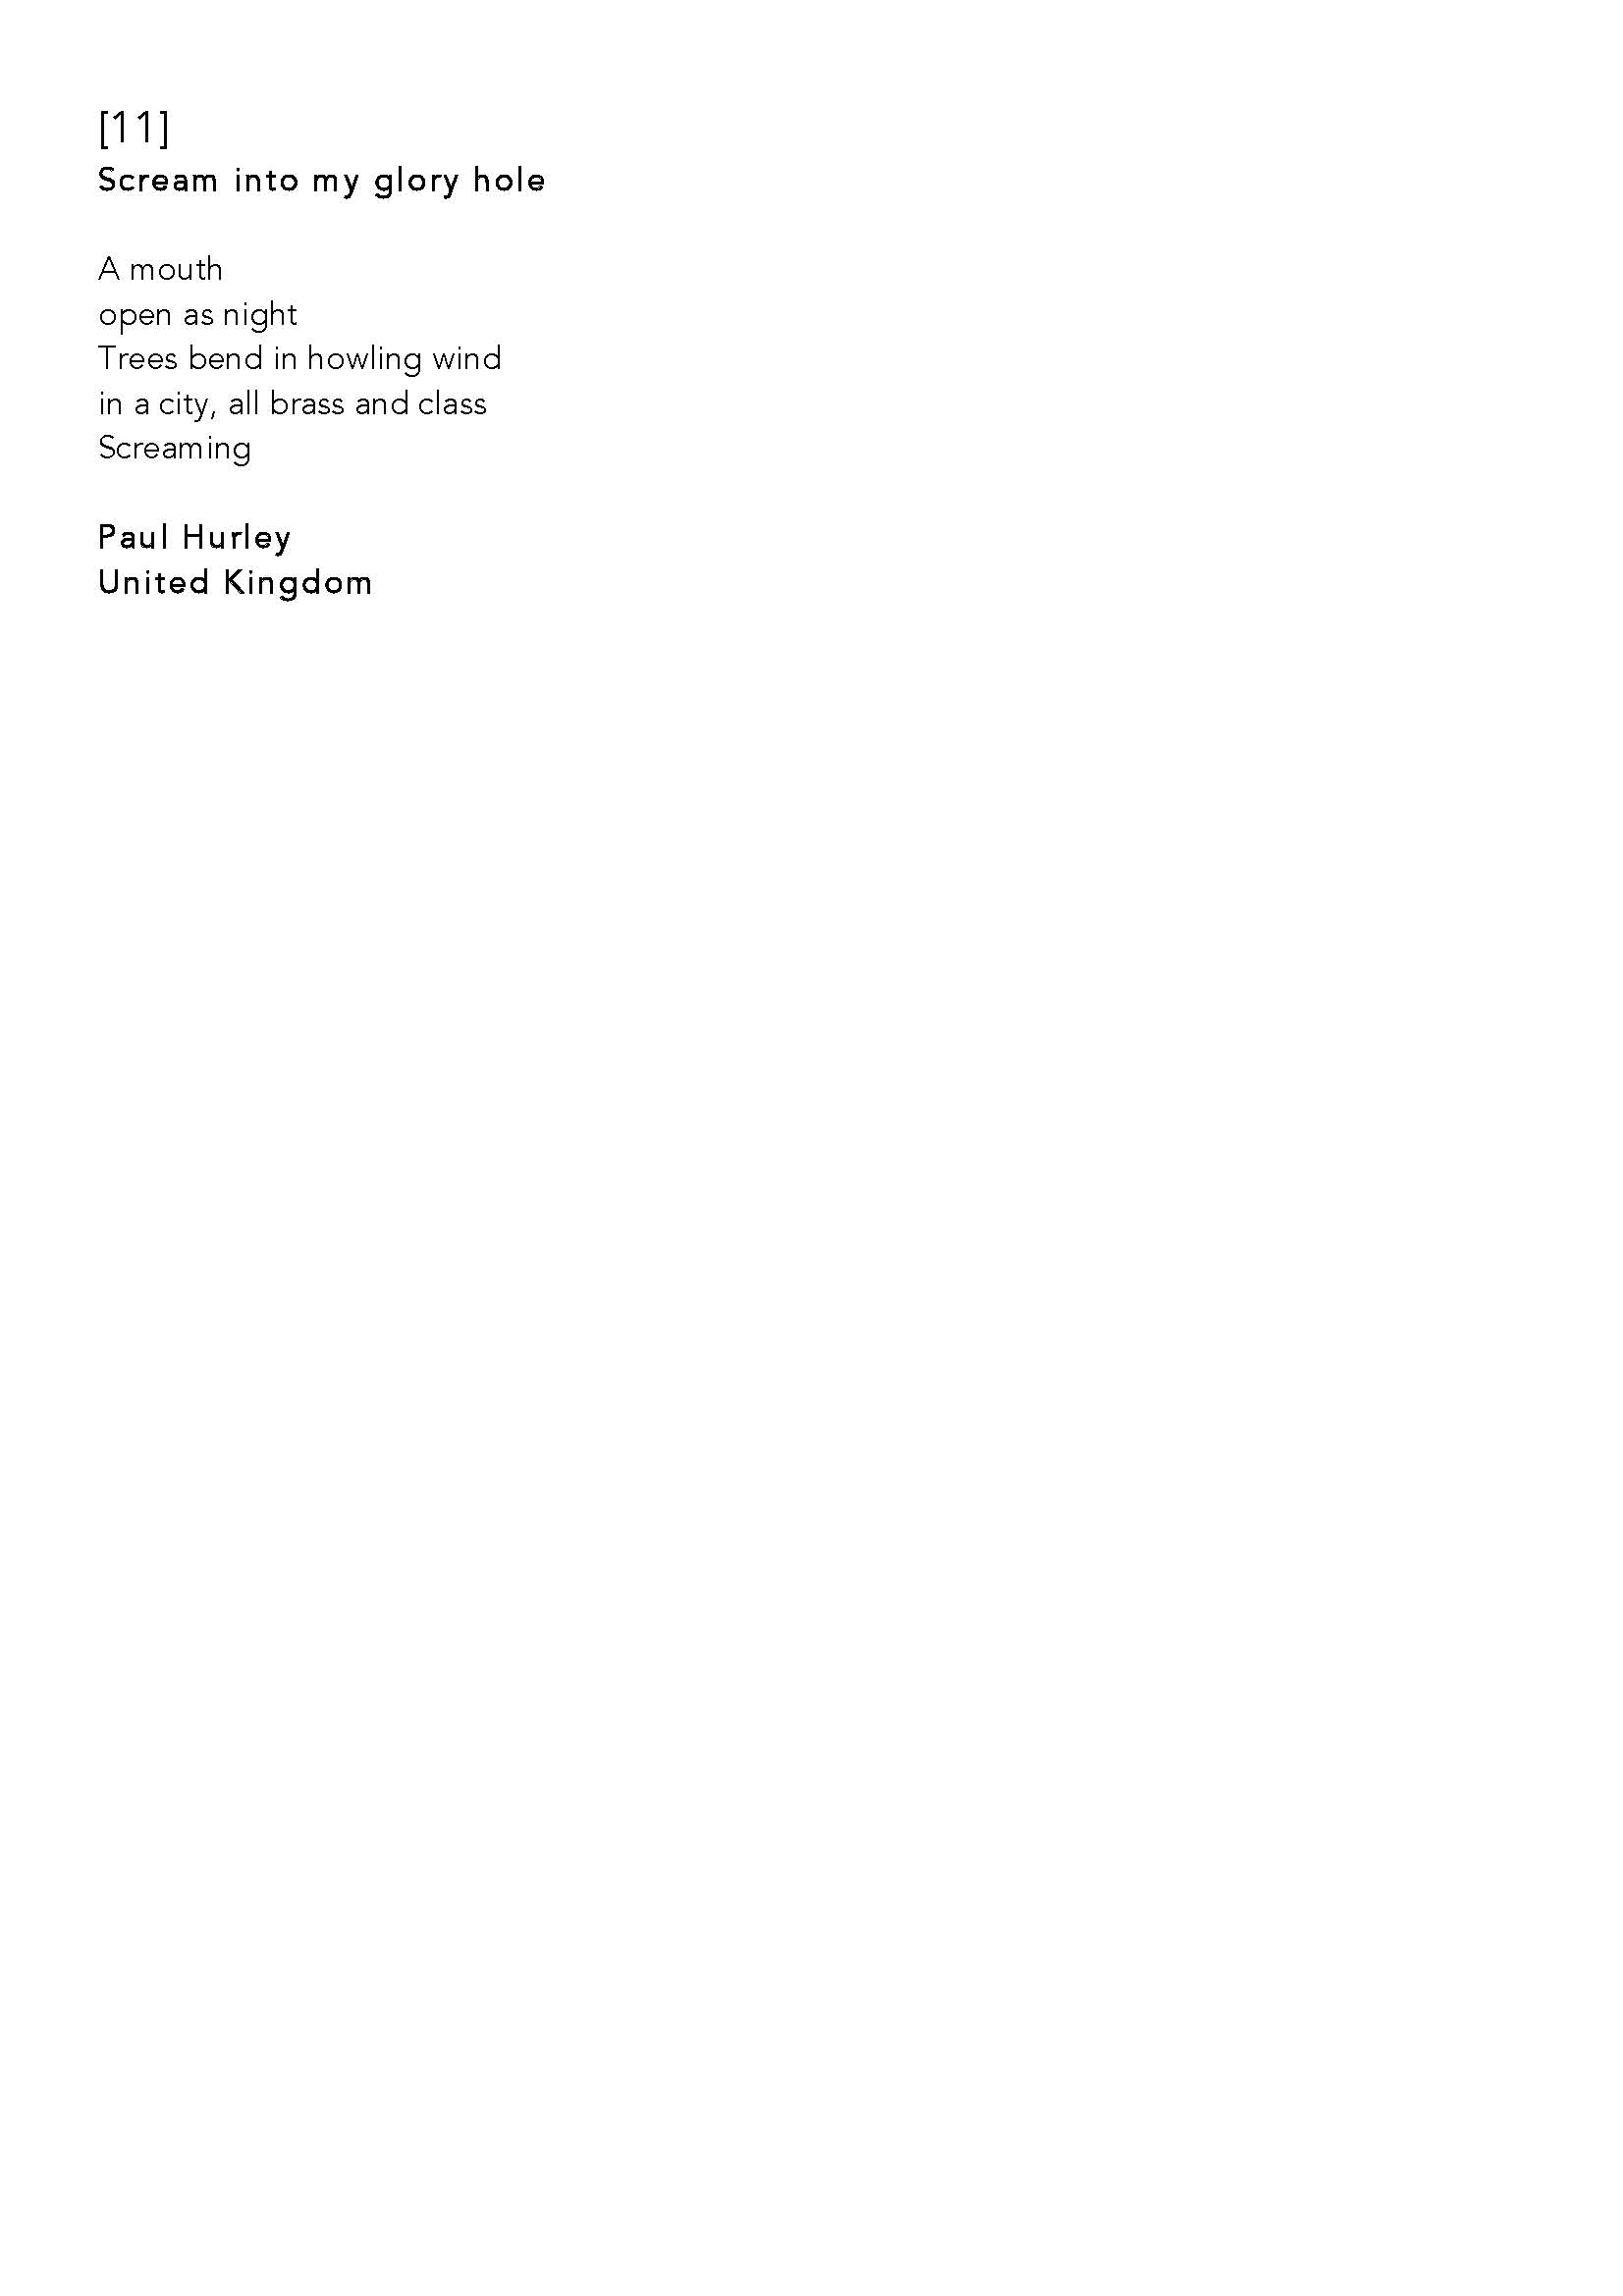 Poetry Collection - Everyone can Poetry _ For 12 May 2014 - R2_Page_11.jpg